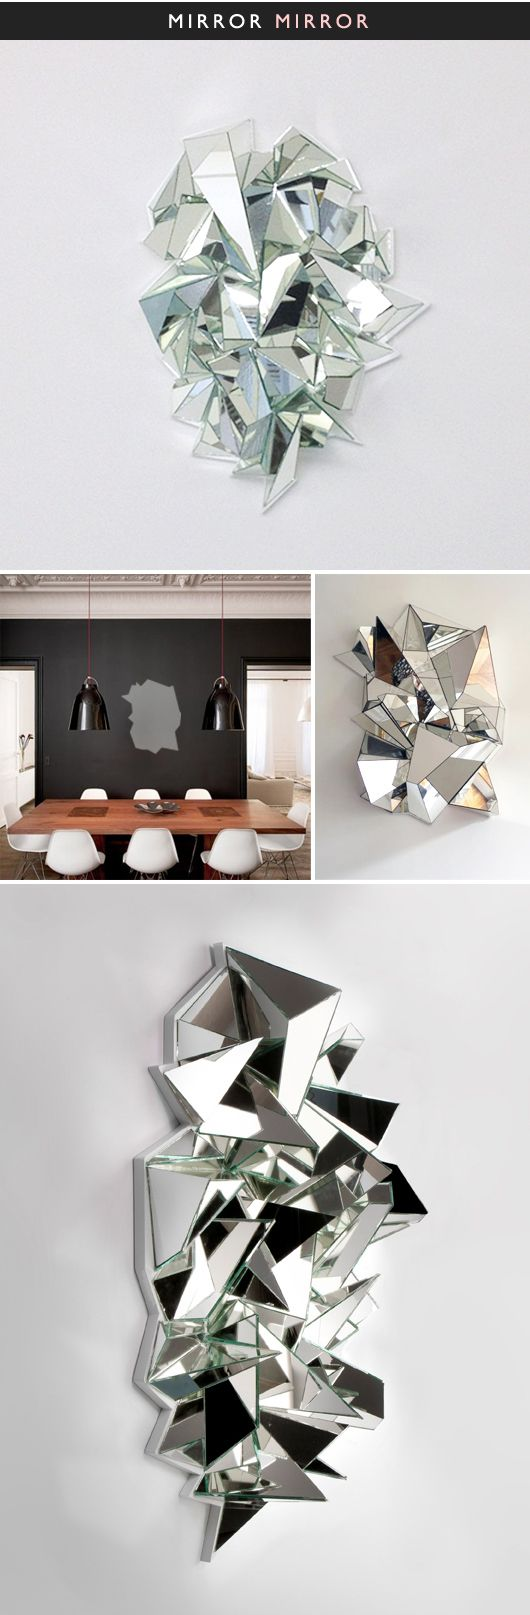 Mirror Wall Sculpture 719 best mirrors images on pinterest | mirror mirror, mirrors and